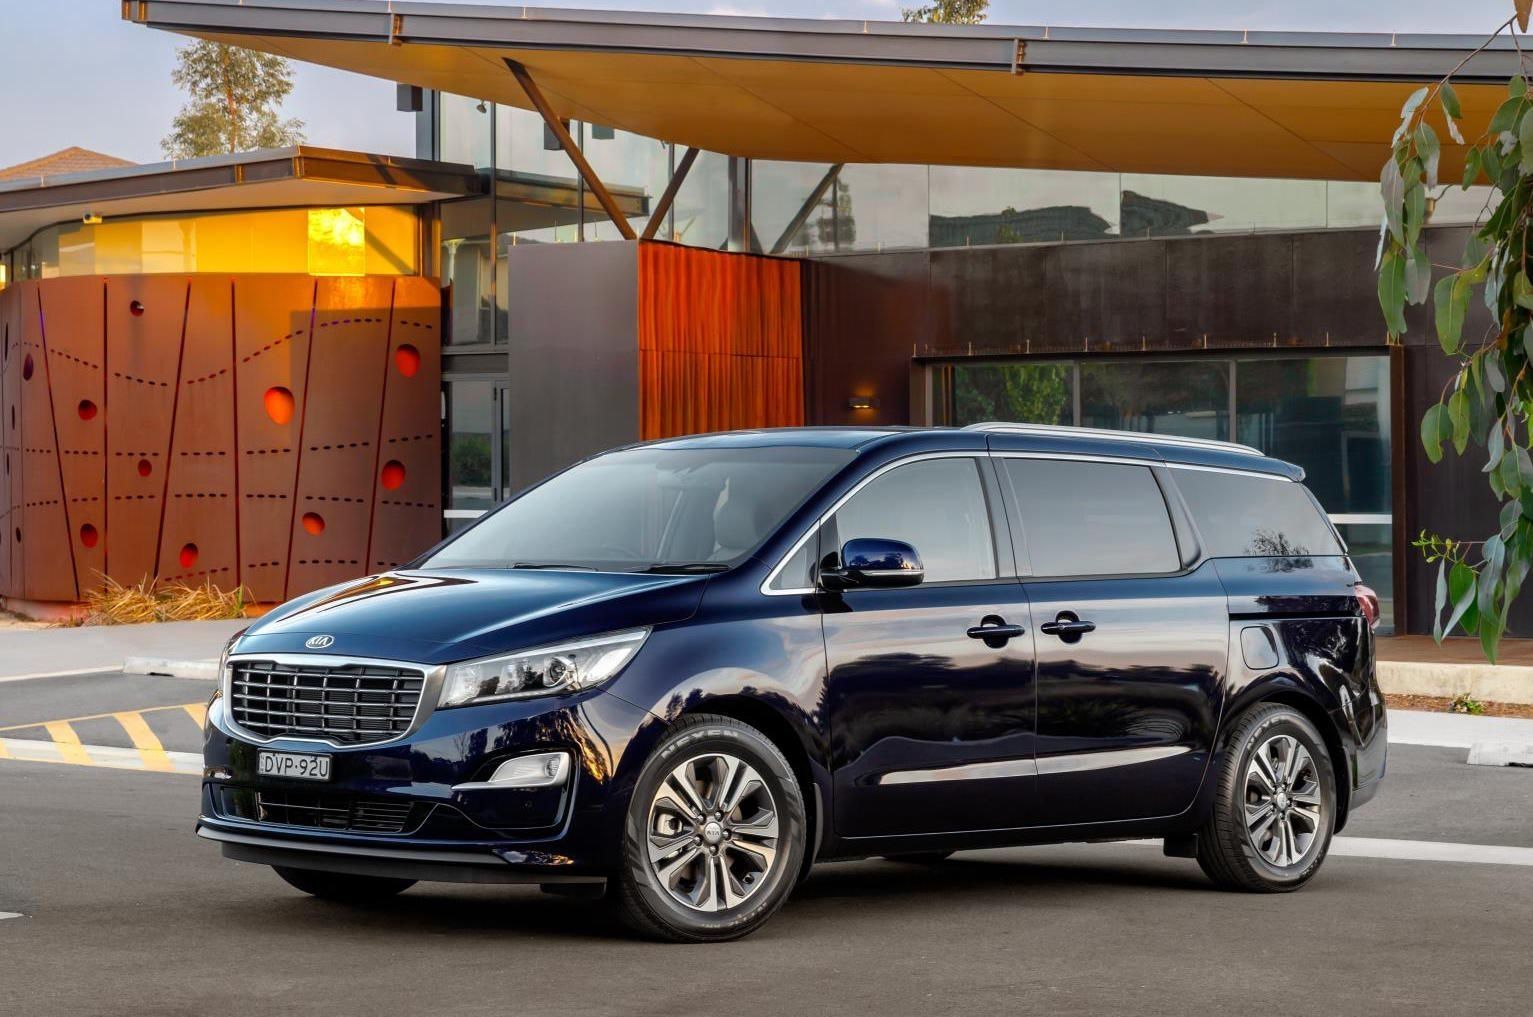 Kia Grand Carnival 2019 Malaysia Price Kia Grand Carnival 2019 Price In India Kia Grand Carnival 2019 Price In Pakistan Kia Grand Carn Kia Car Performance Cars